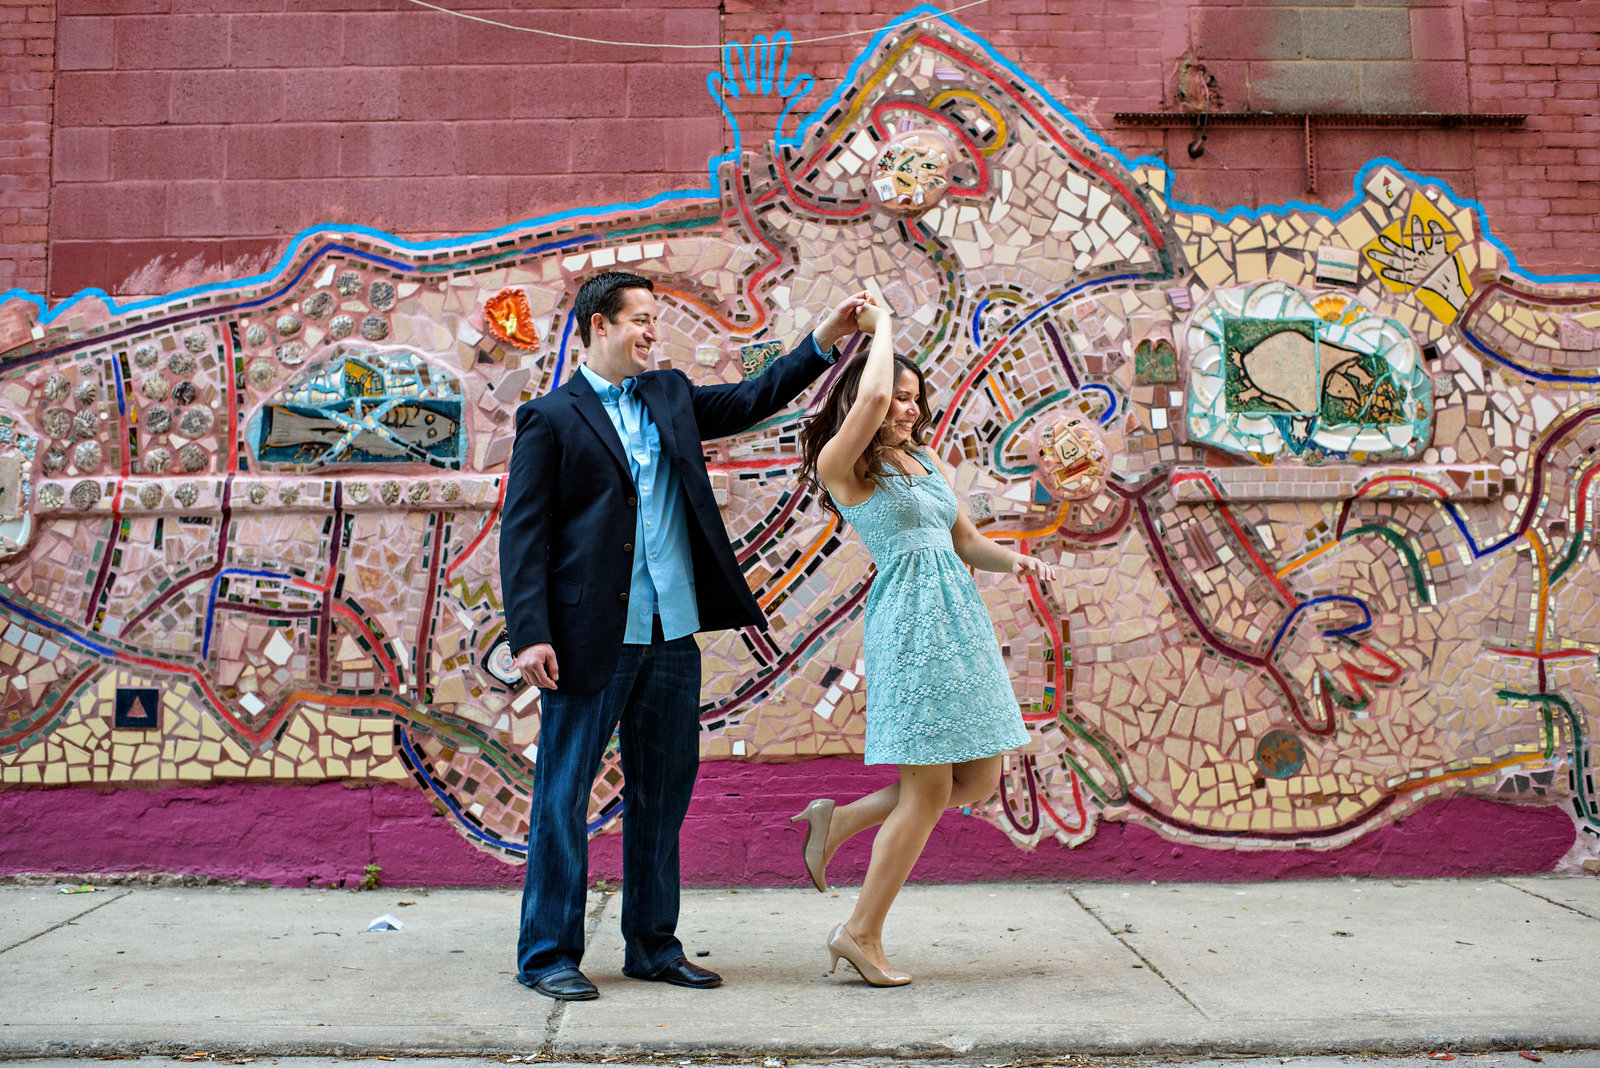 A newly engaged couple dance in front of a south philly mural.